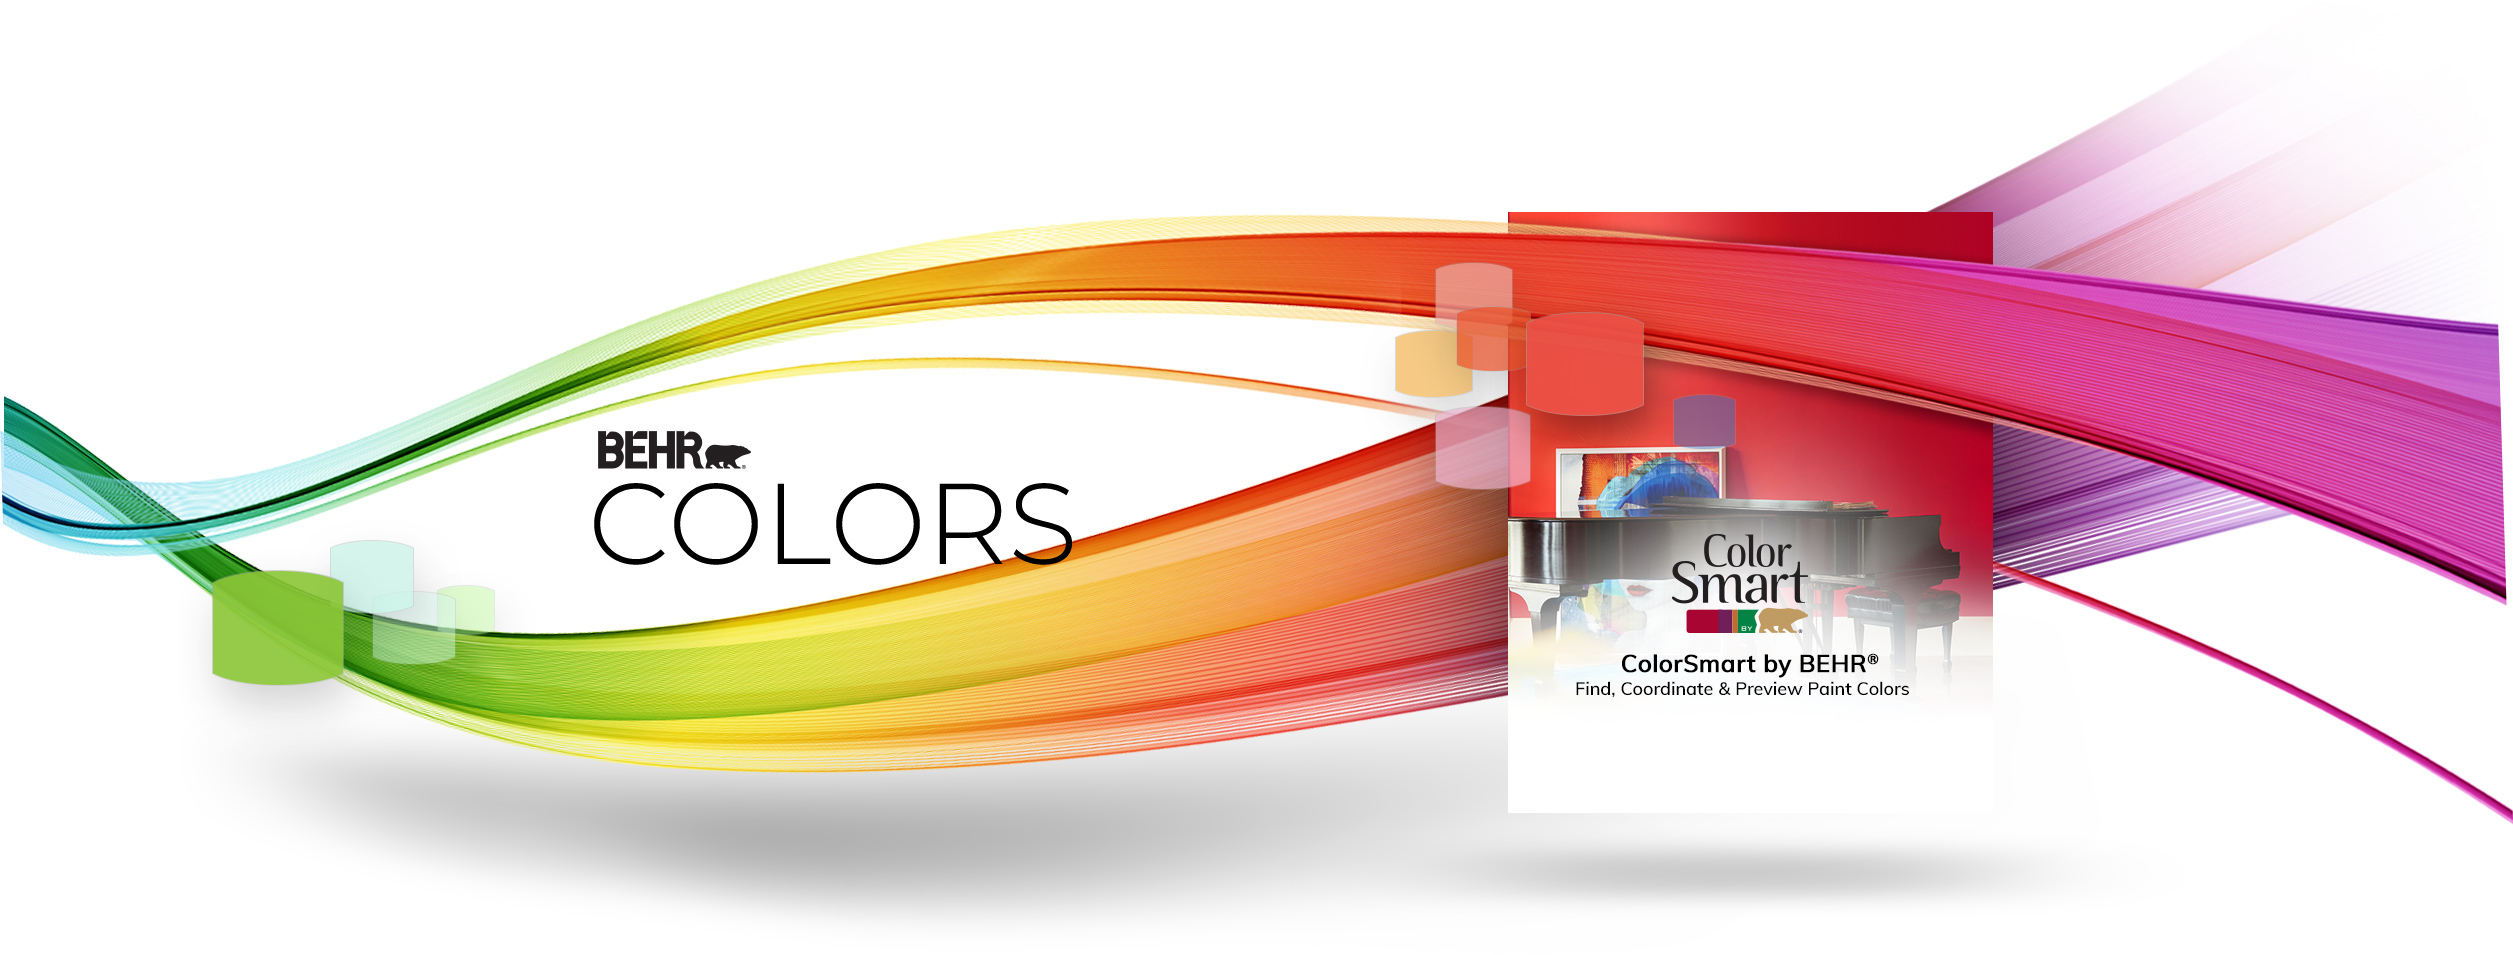 Creative image of ribbons of color sweeping across the page, winding around ColorSmart logo.